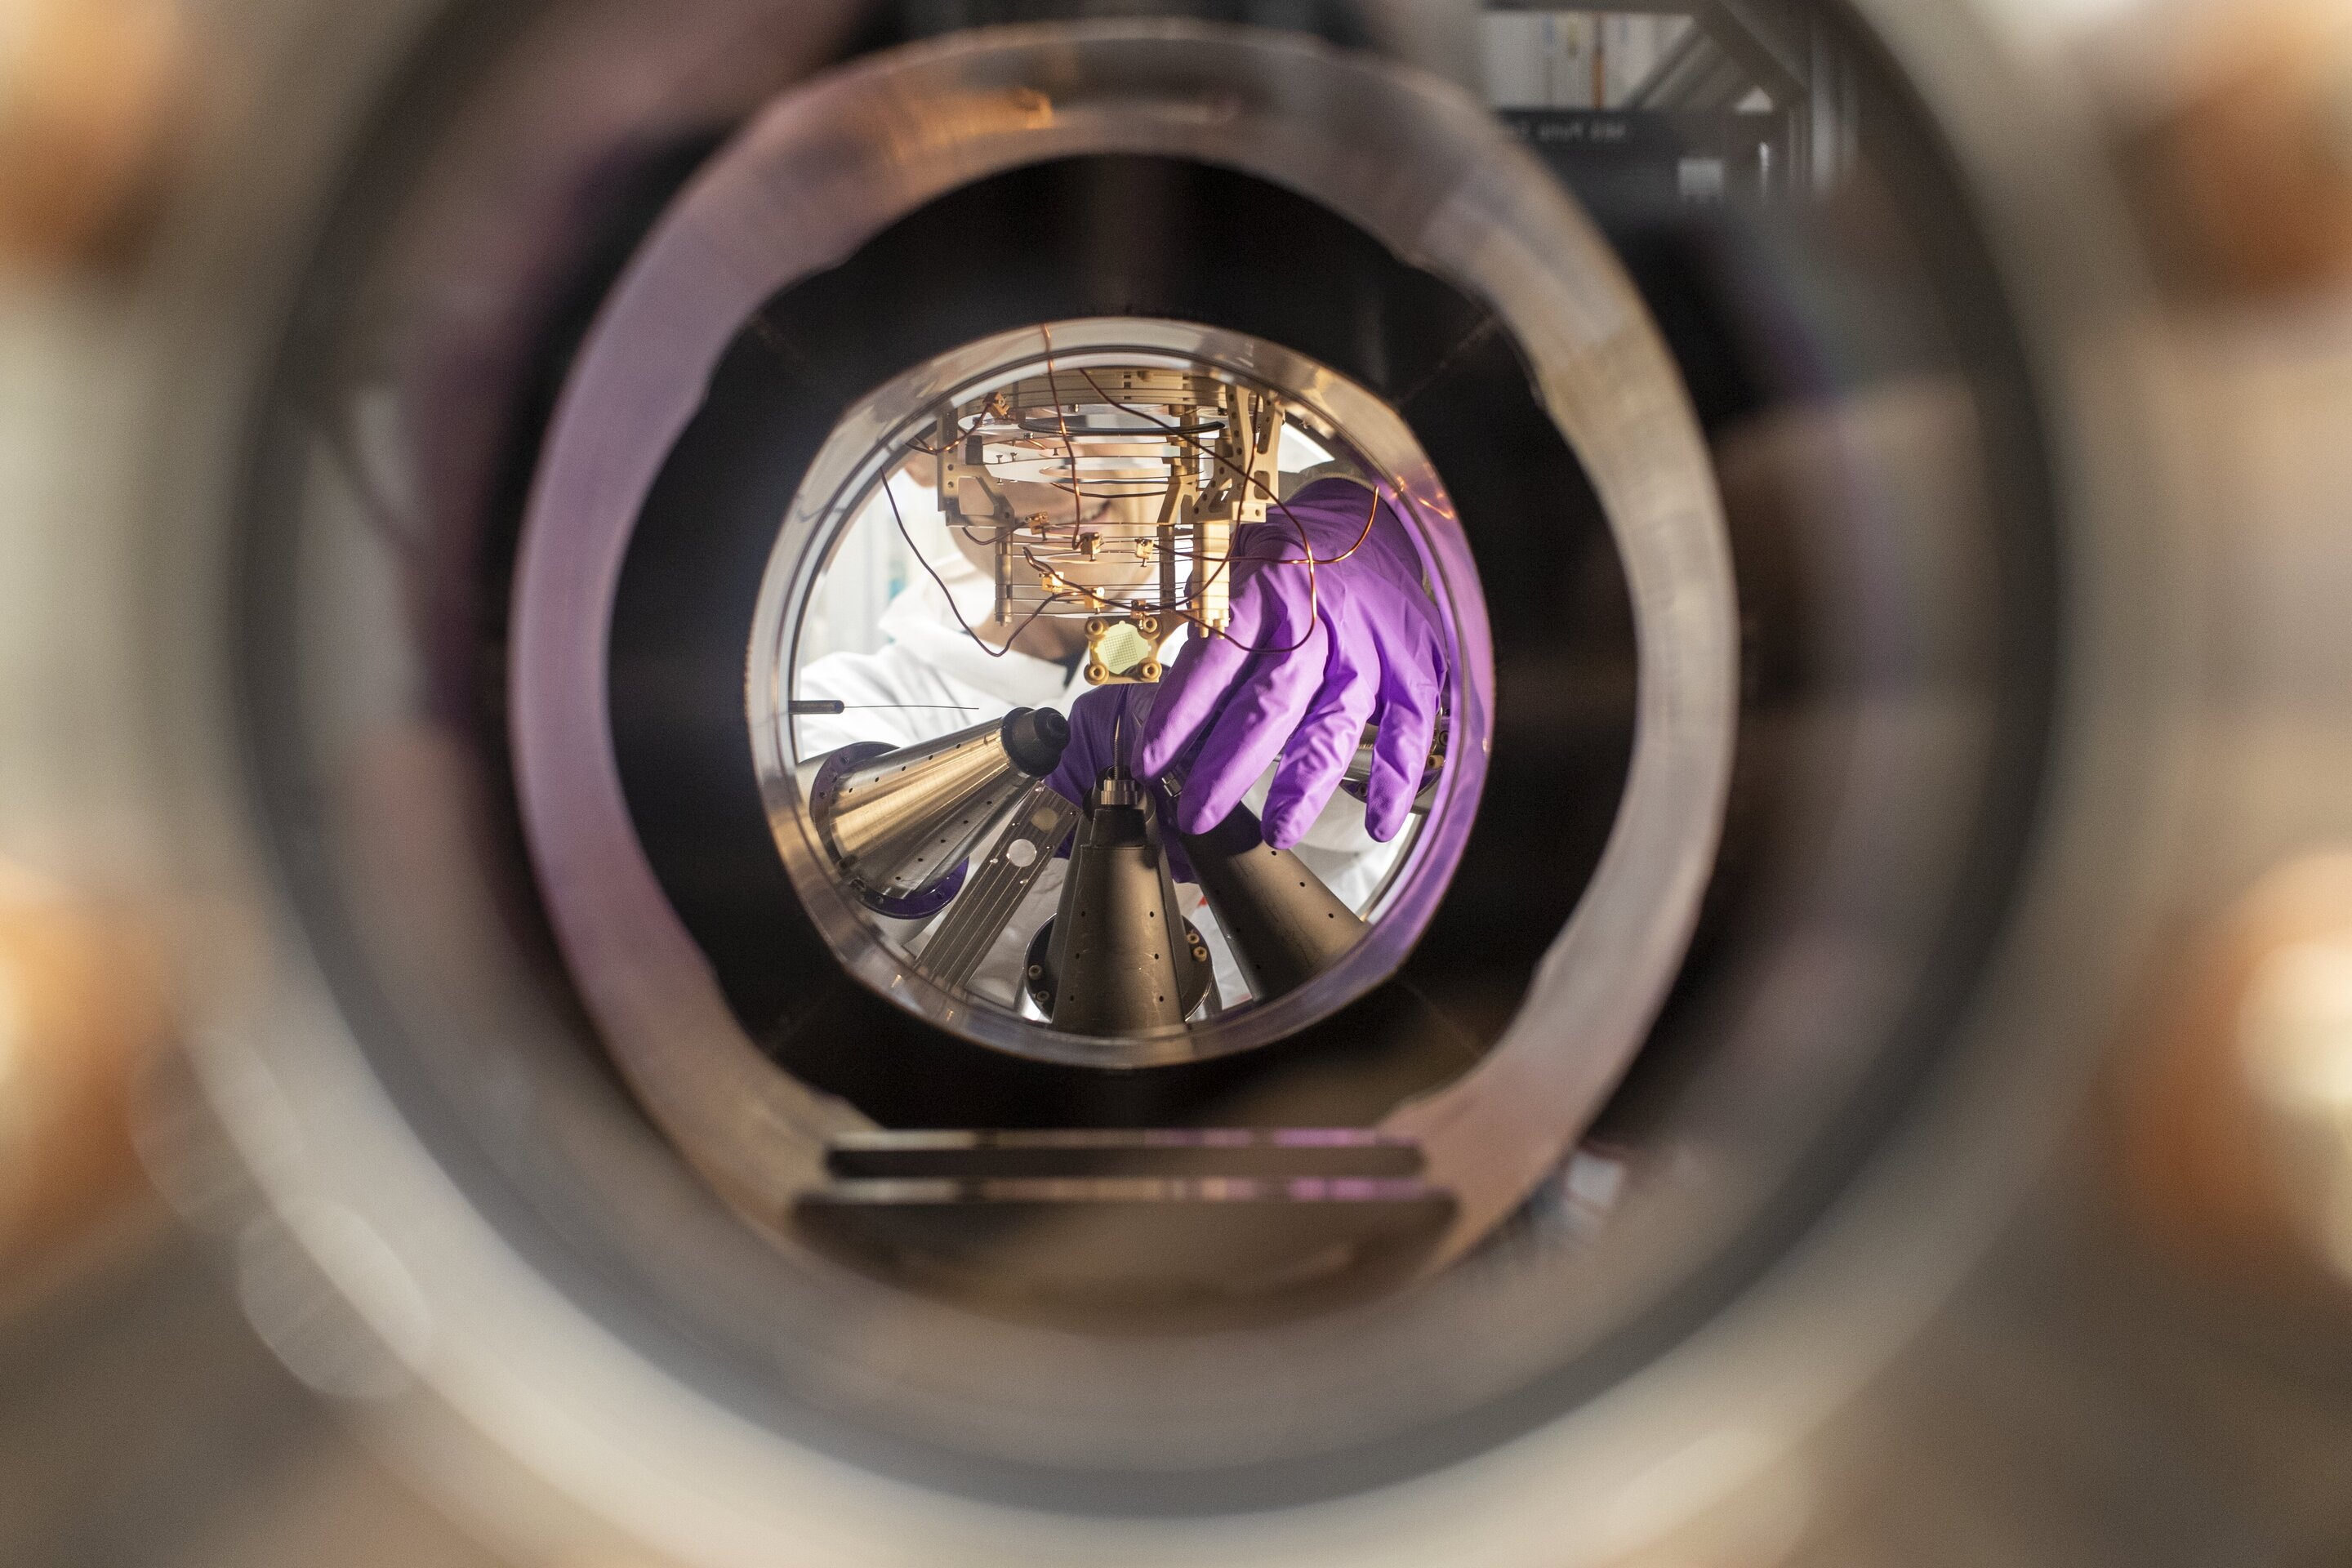 The new experiment provides a better understanding of the basic X-ray processes induced by photography